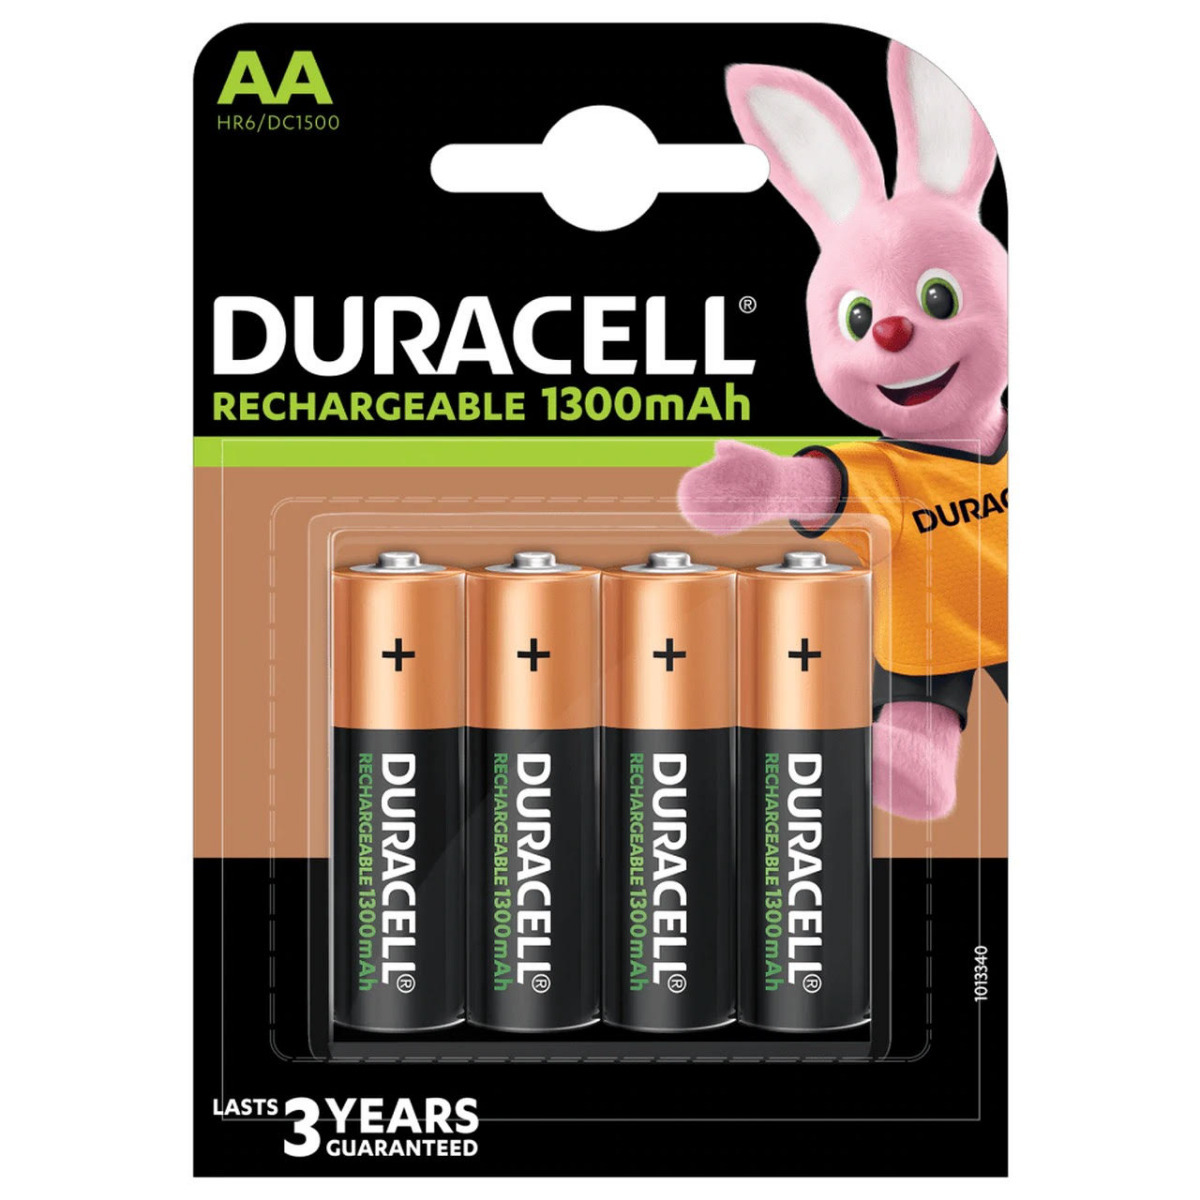 Duracell Rechargeable AA LR6 1300mAh Rechargeable Batteries | 4 Pack